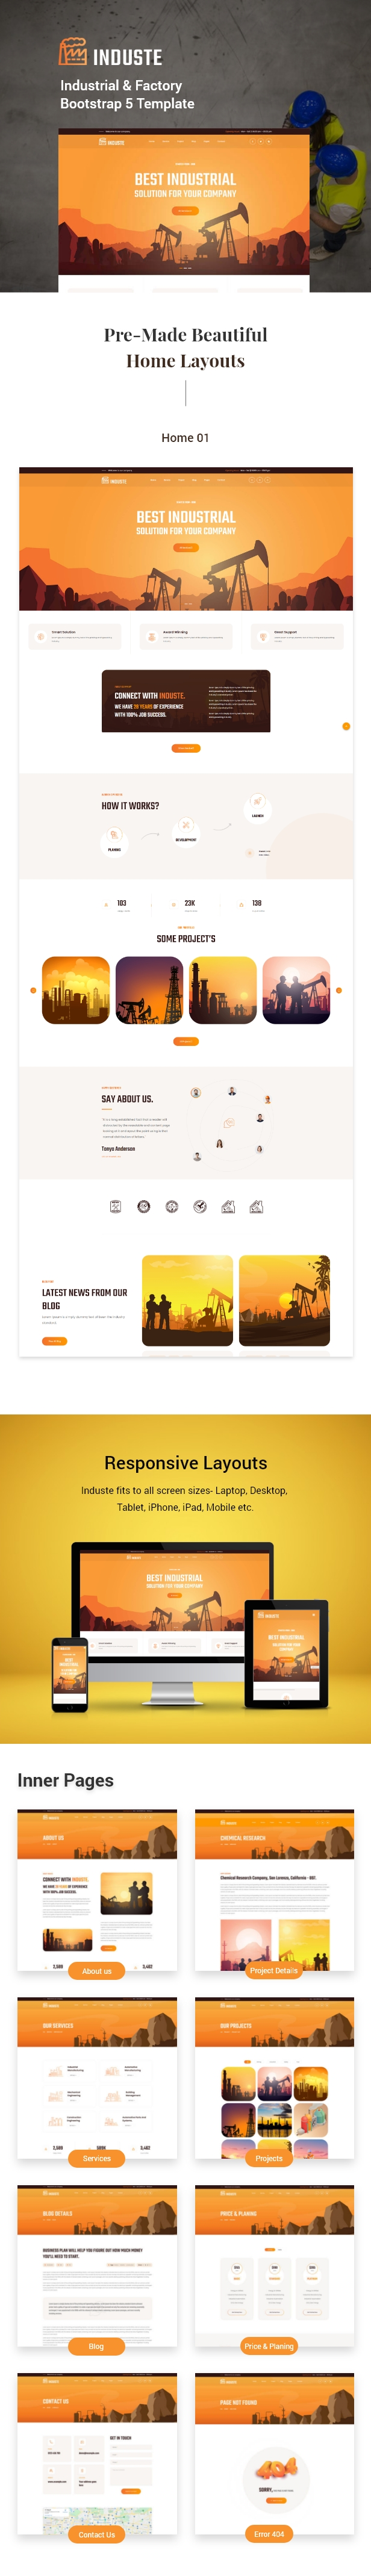 Induste - Industrial & Factory Bootstrap 5 Template - 1